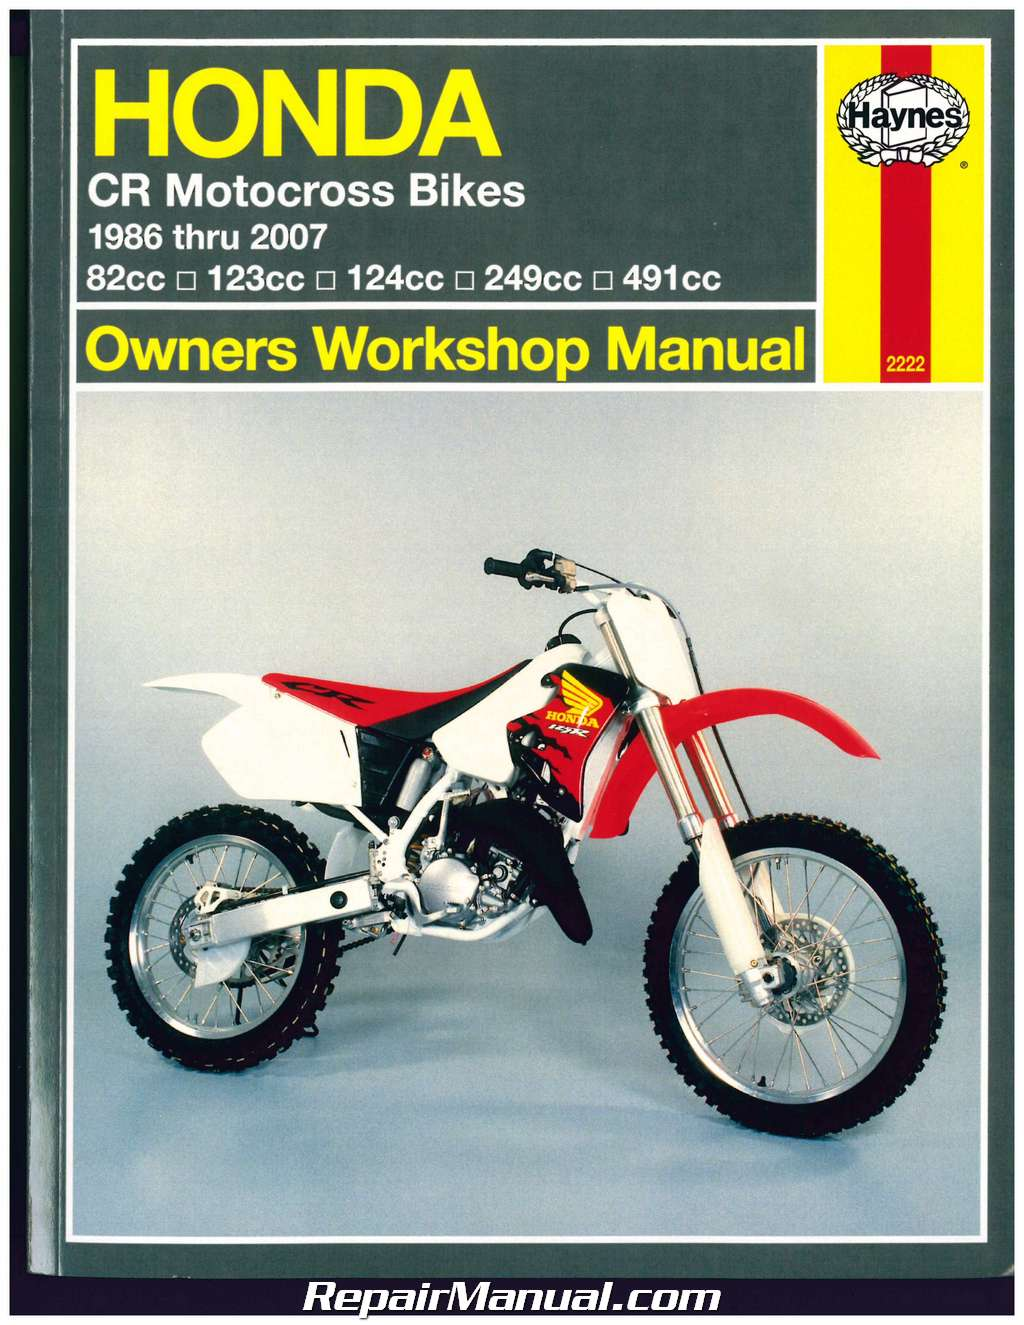 Honda Cr Wiring Diagram on craigslist honda cr 500, 86 honda interceptor 500, 2000 honda cr 500,